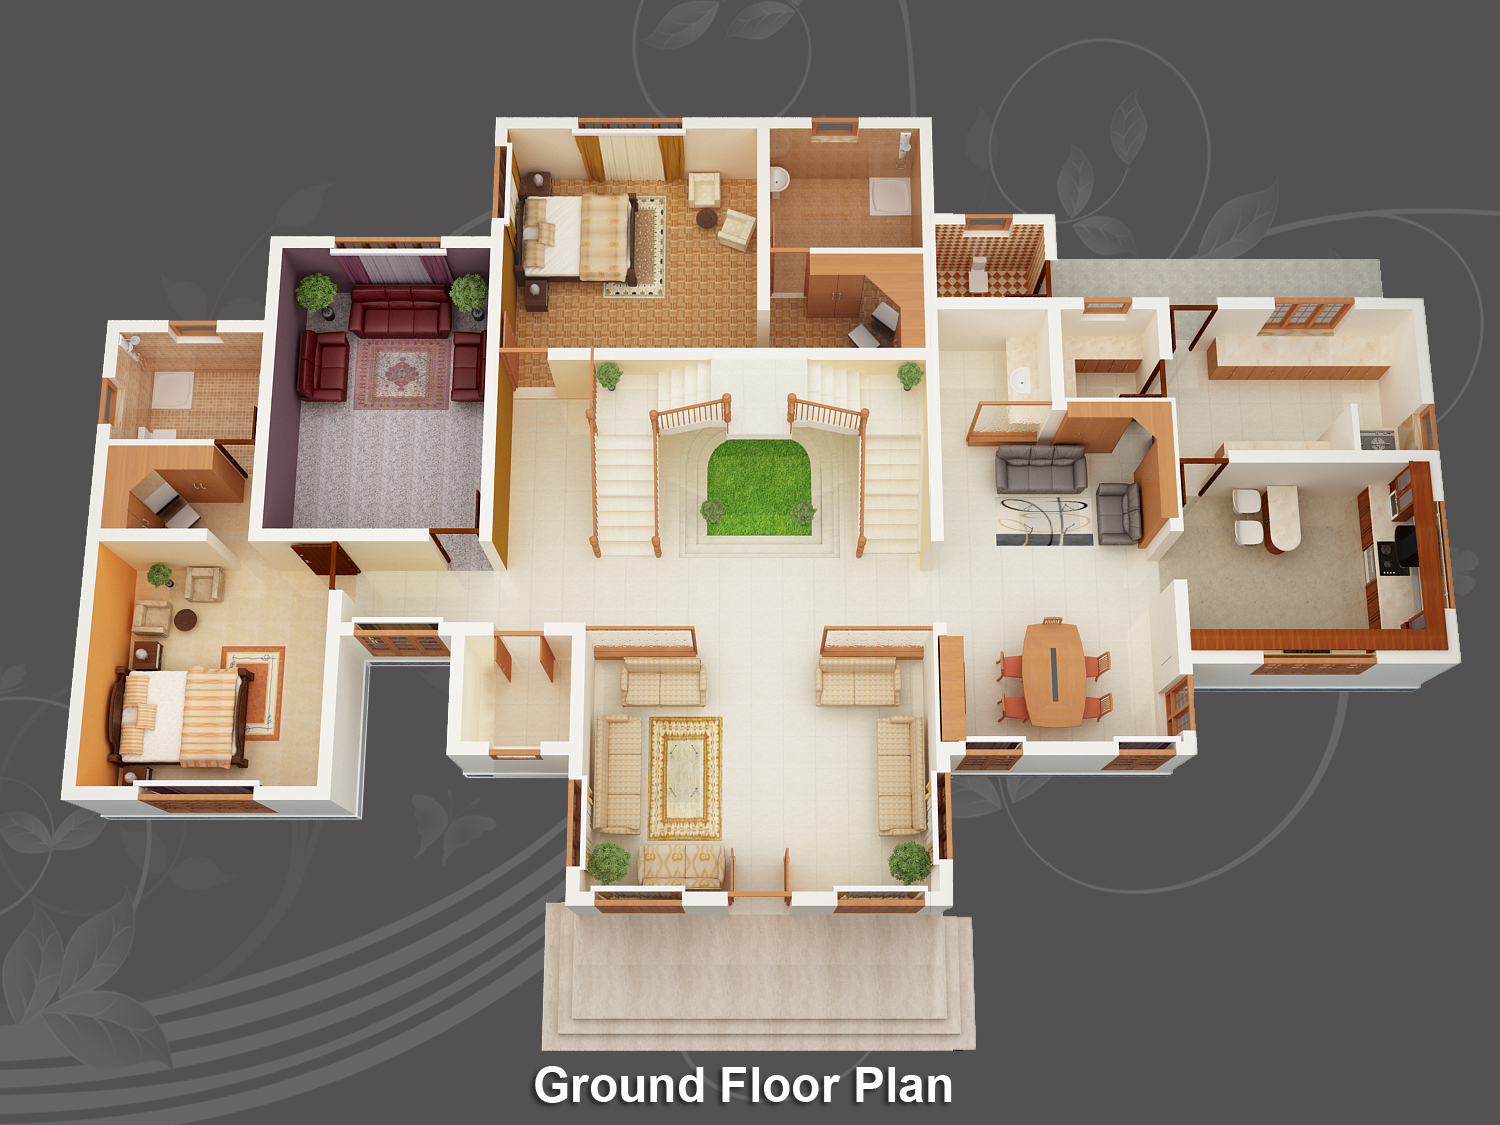 Evens construction pvt ltd 3d house plan 20 05 2011 for 3d house plans